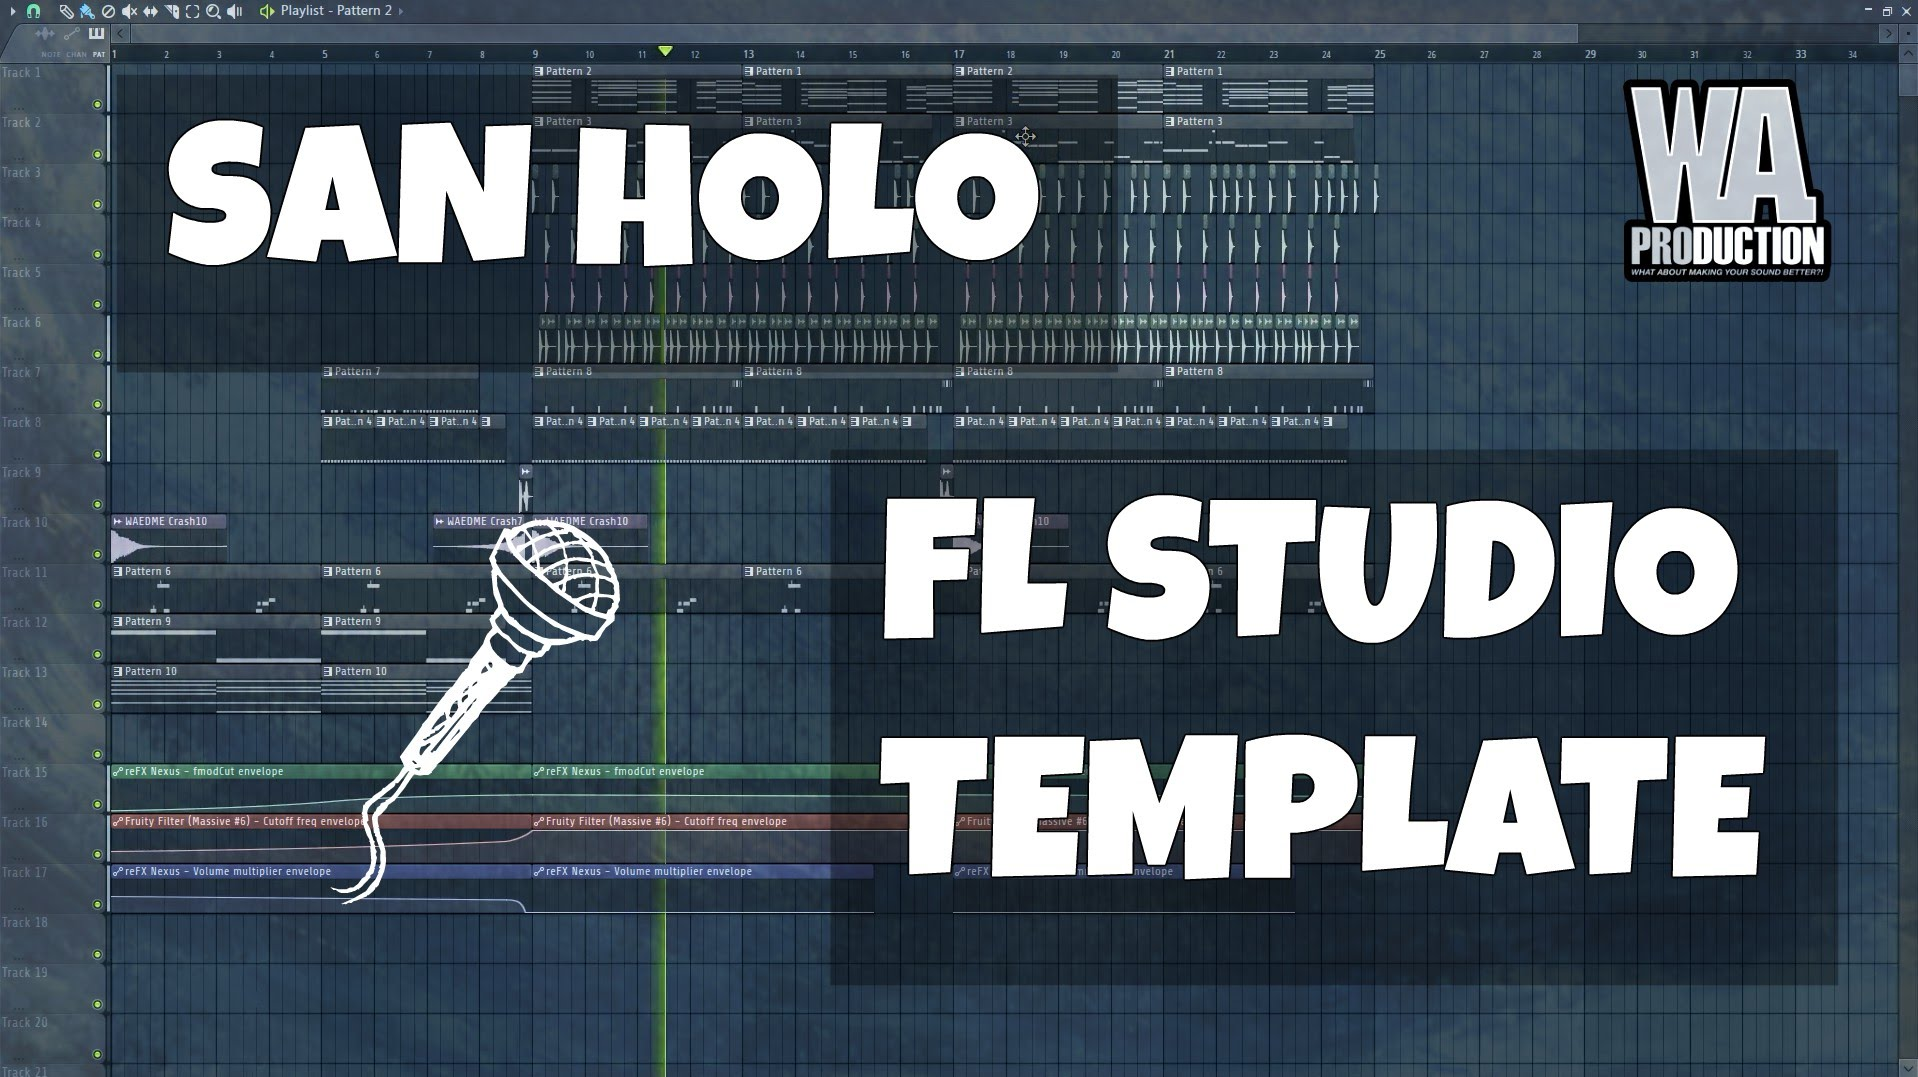 Fl Studio Template 9 Future B Chillstep Trap San Holo Type W A Production